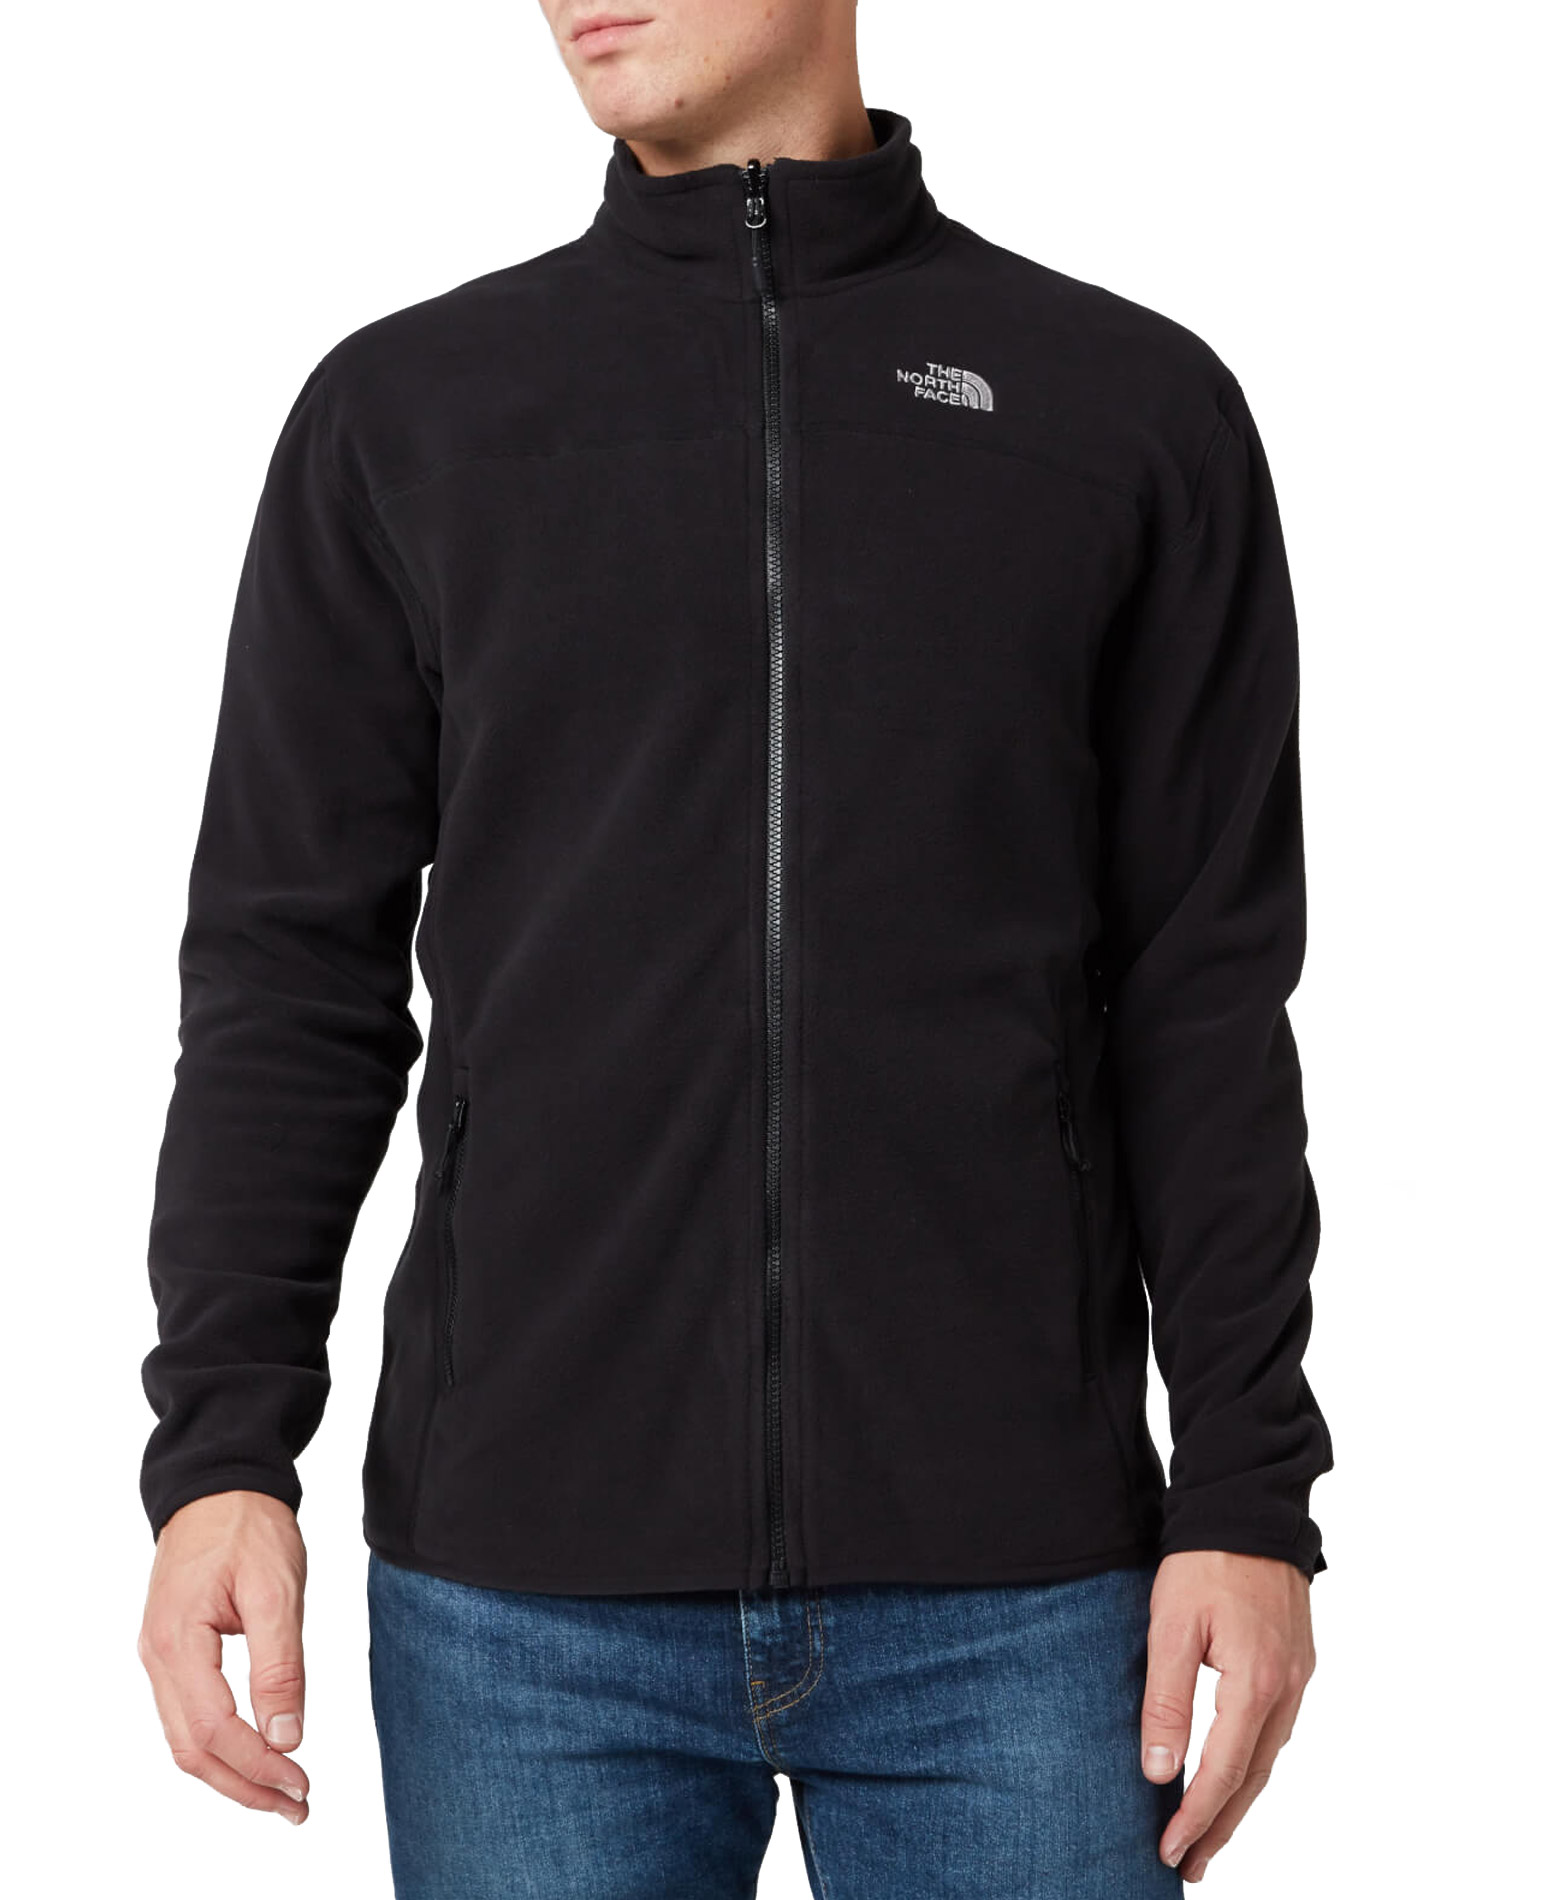 THE NORTH FACE M 100 GLACIER FULL ZIP NFA2UAQJK3-JK3 Μαύρο